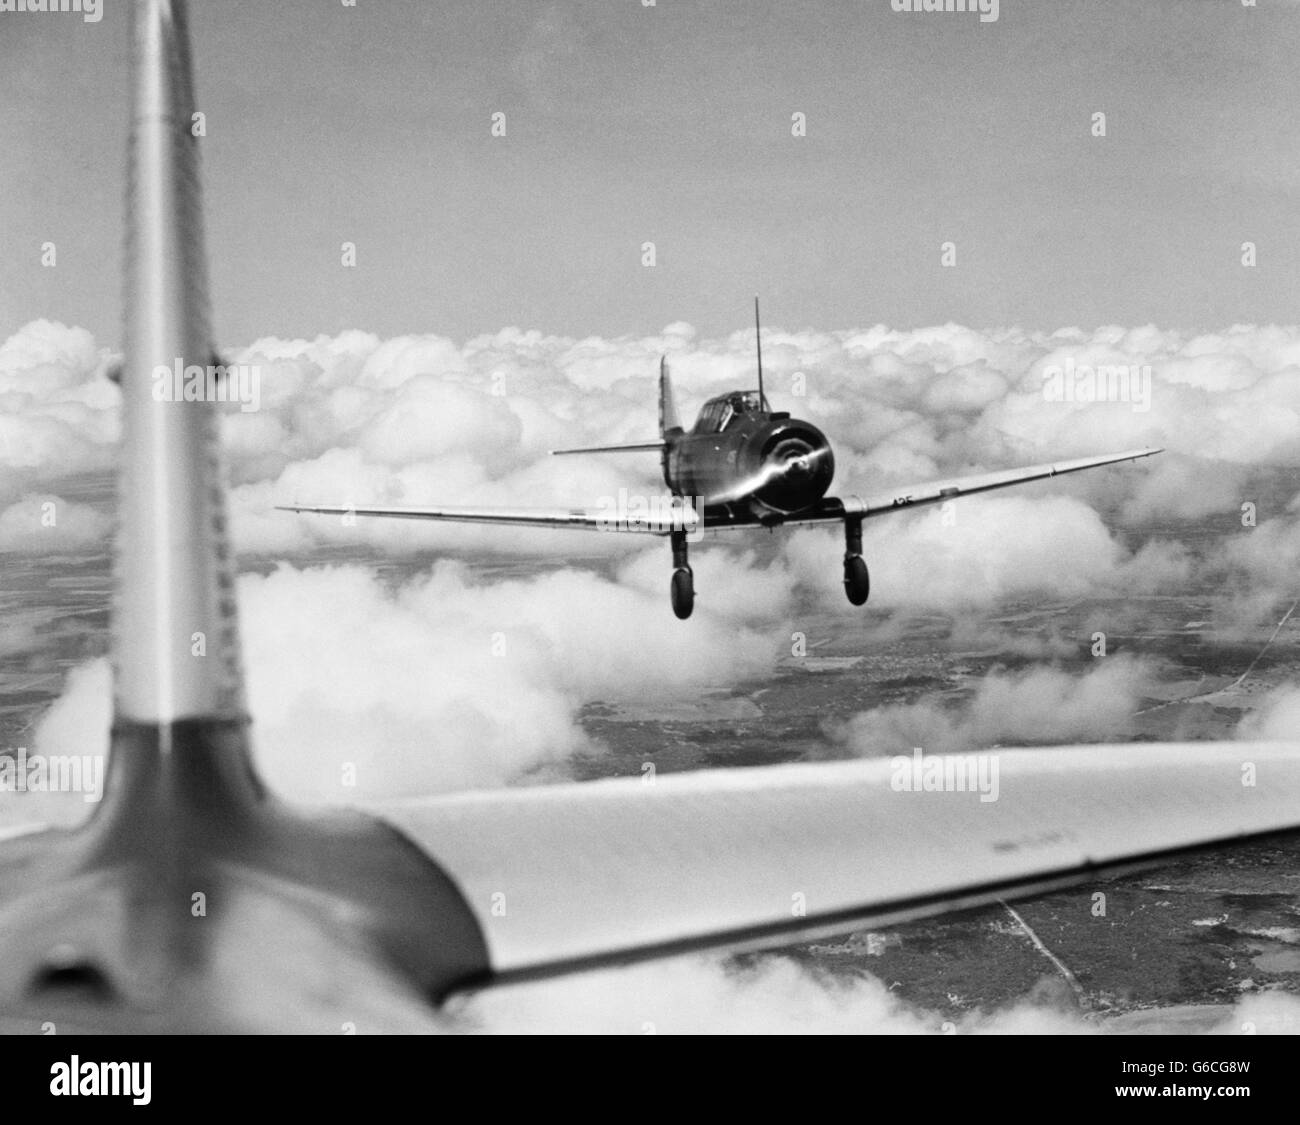 1940s WORLD WAR II ACCELERATED PILOT BASIC TRAINING PLANES ARMY AIR CORPS RANDOLPH FIELD TEXAS USA - Stock Image